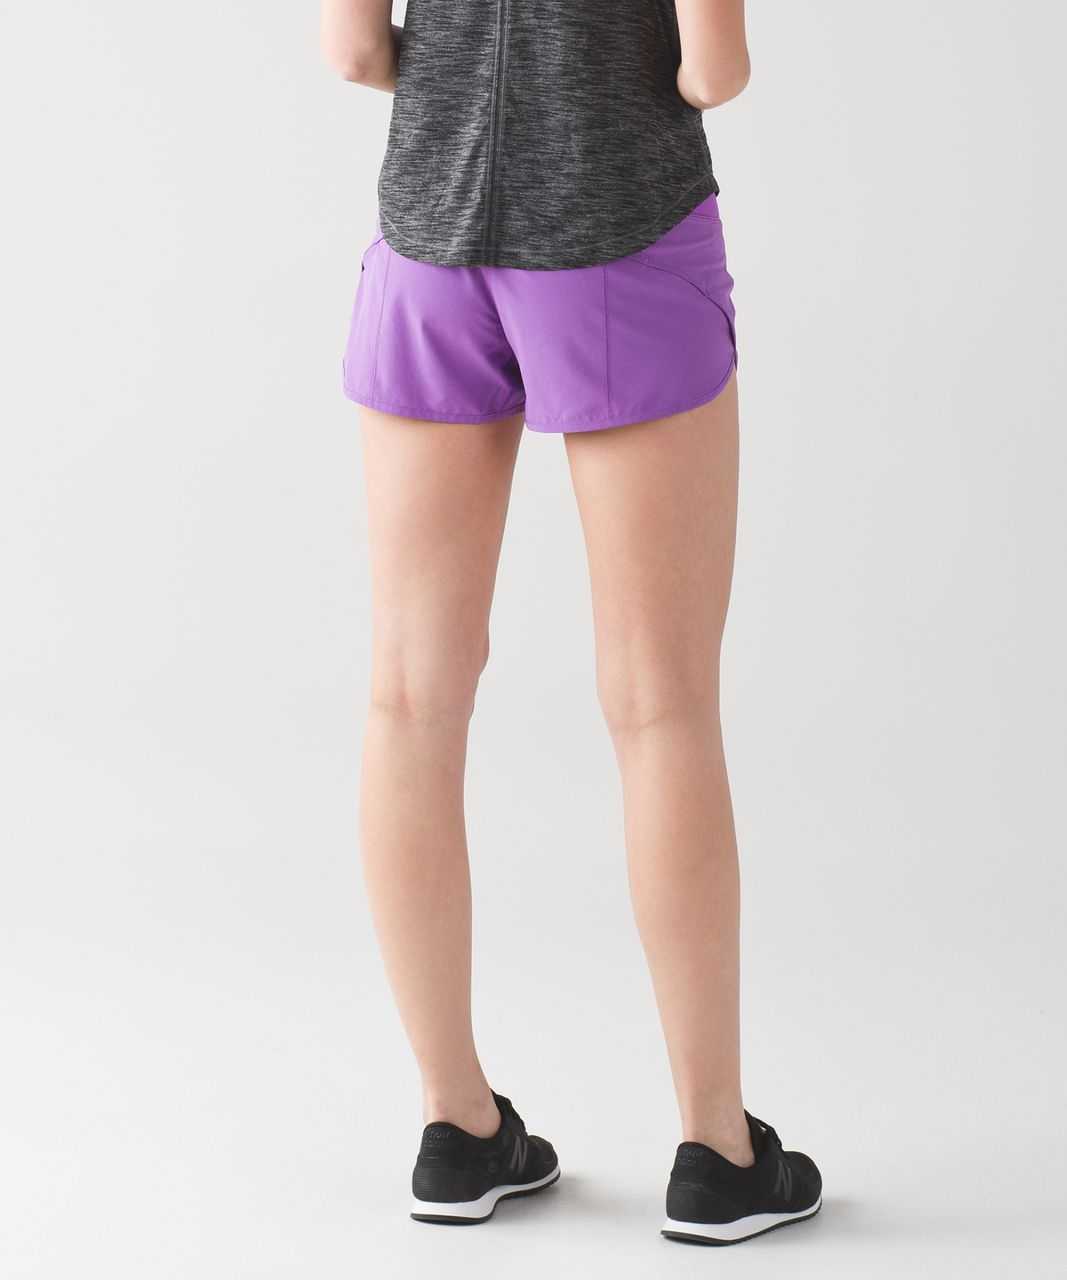 Lululemon Speed Short - Moonlit Magenta